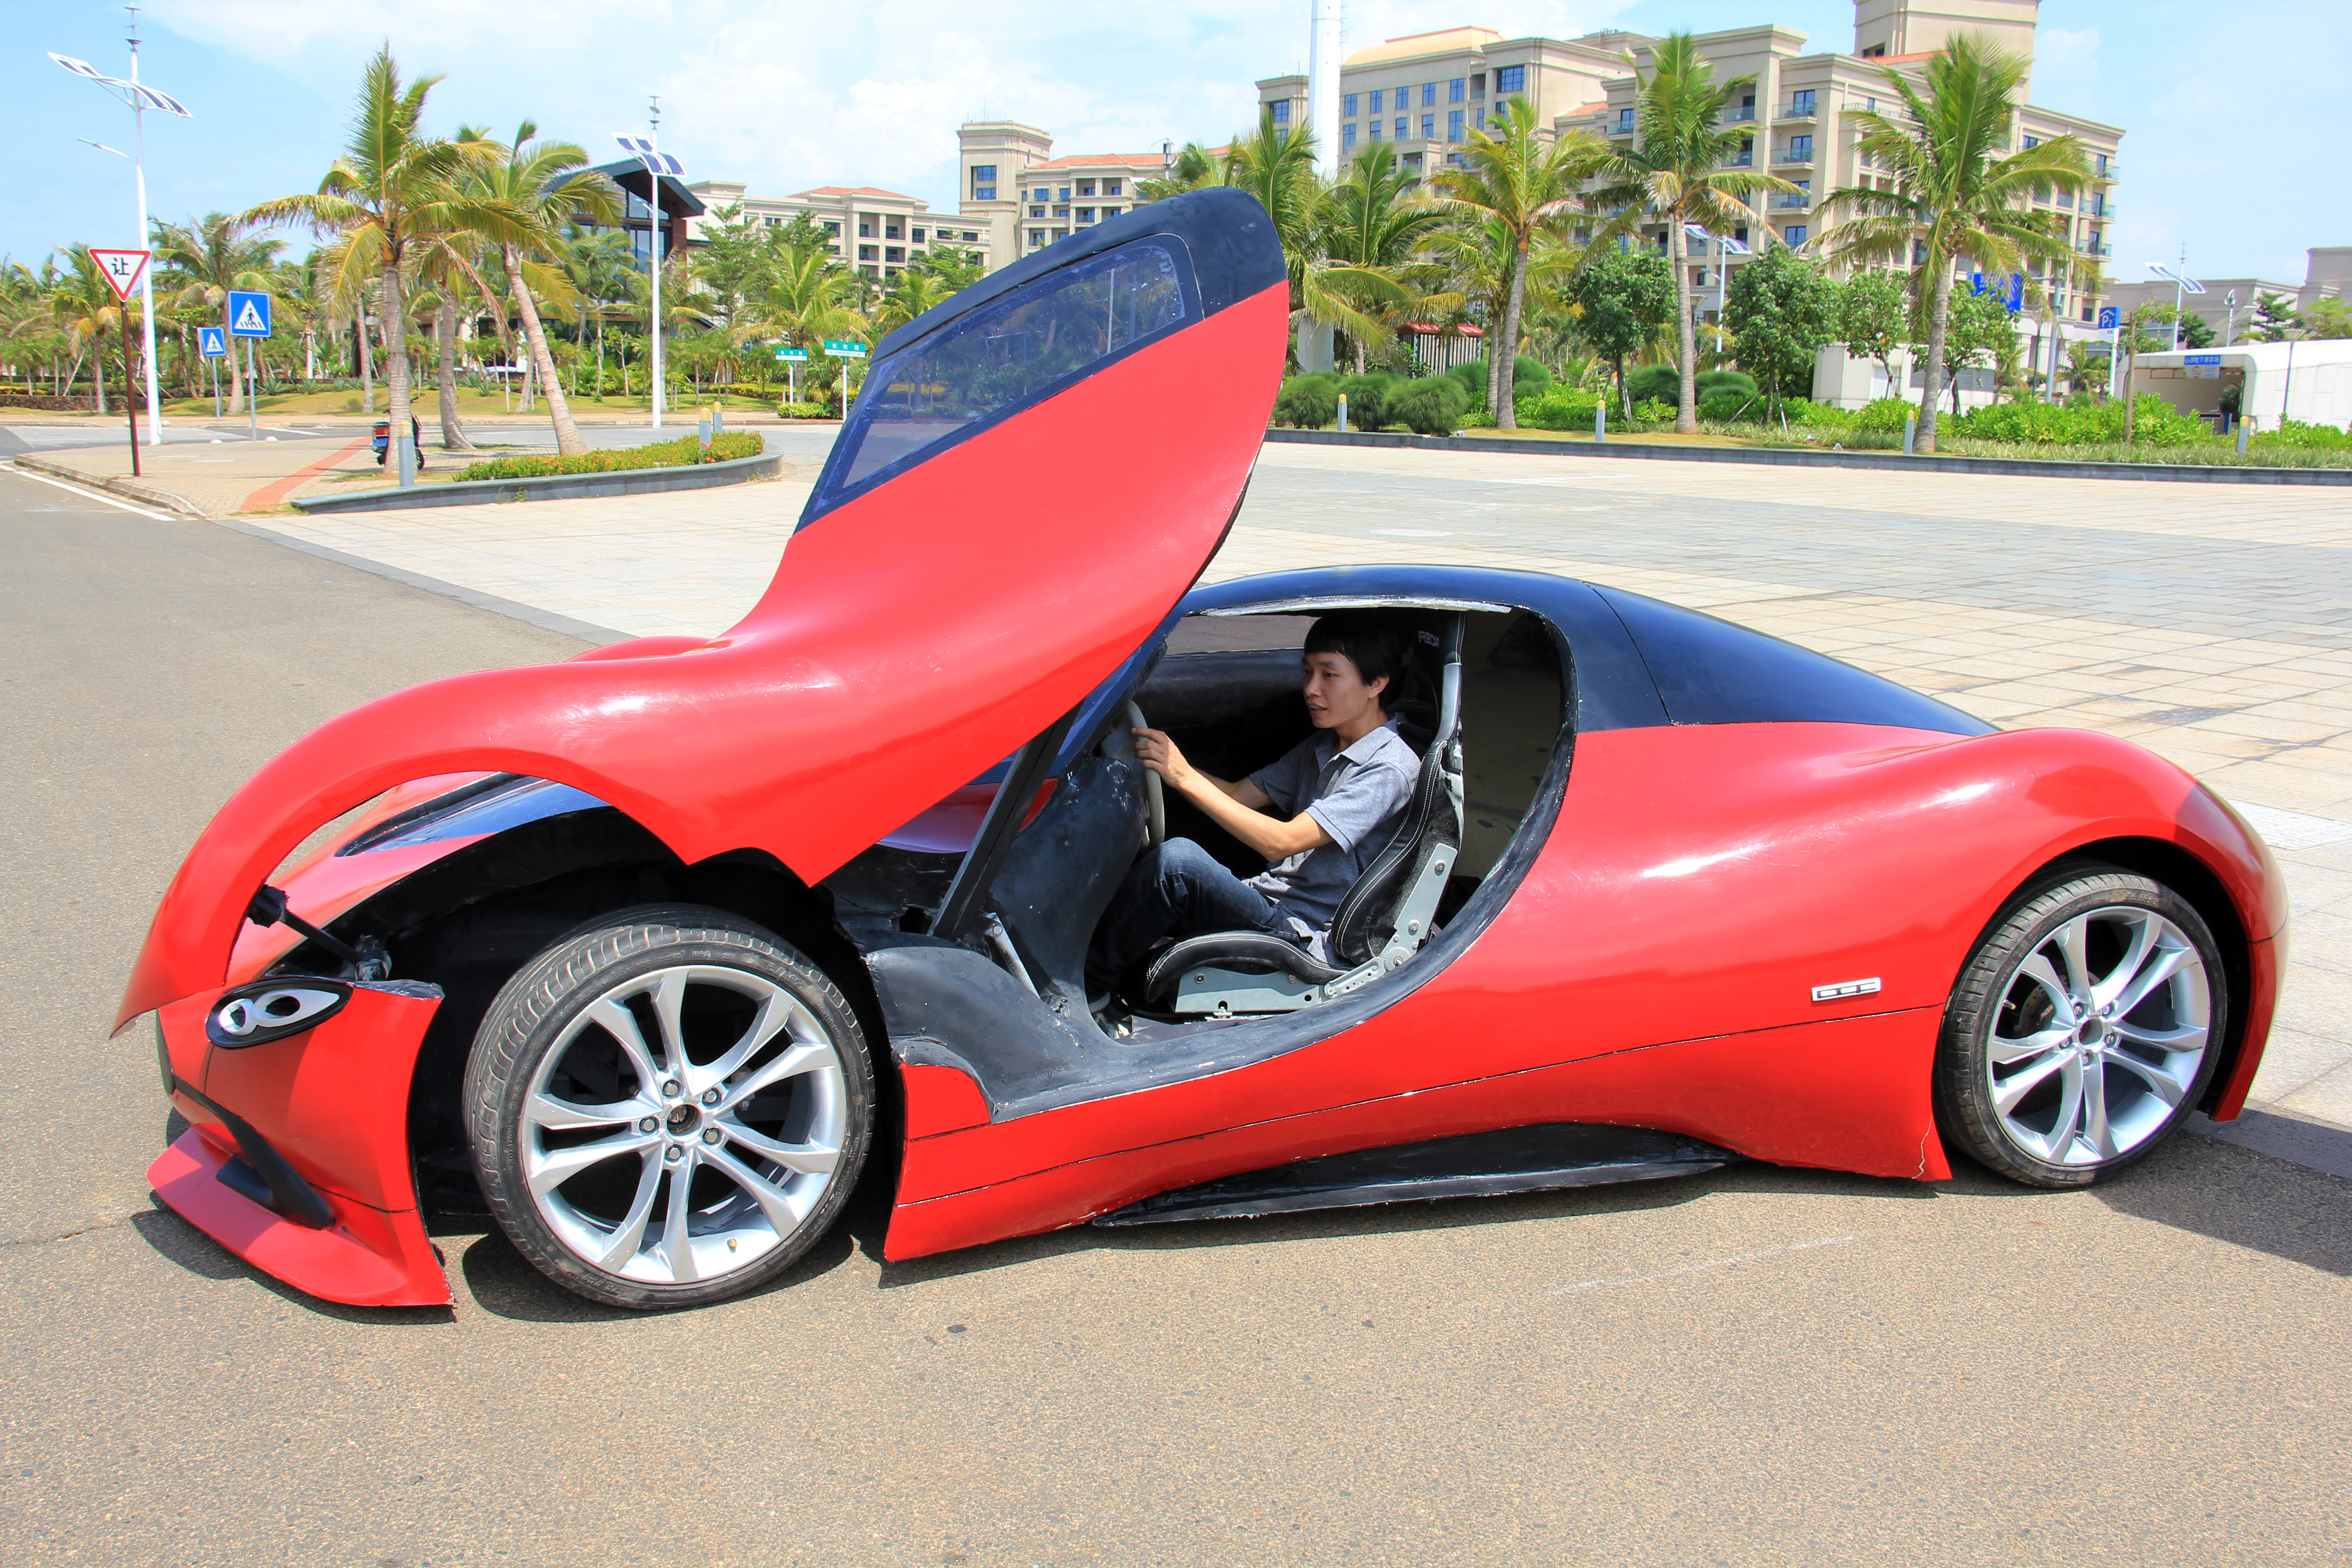 Self-made SportsCar Within Over 30,000 RMB In Haikou